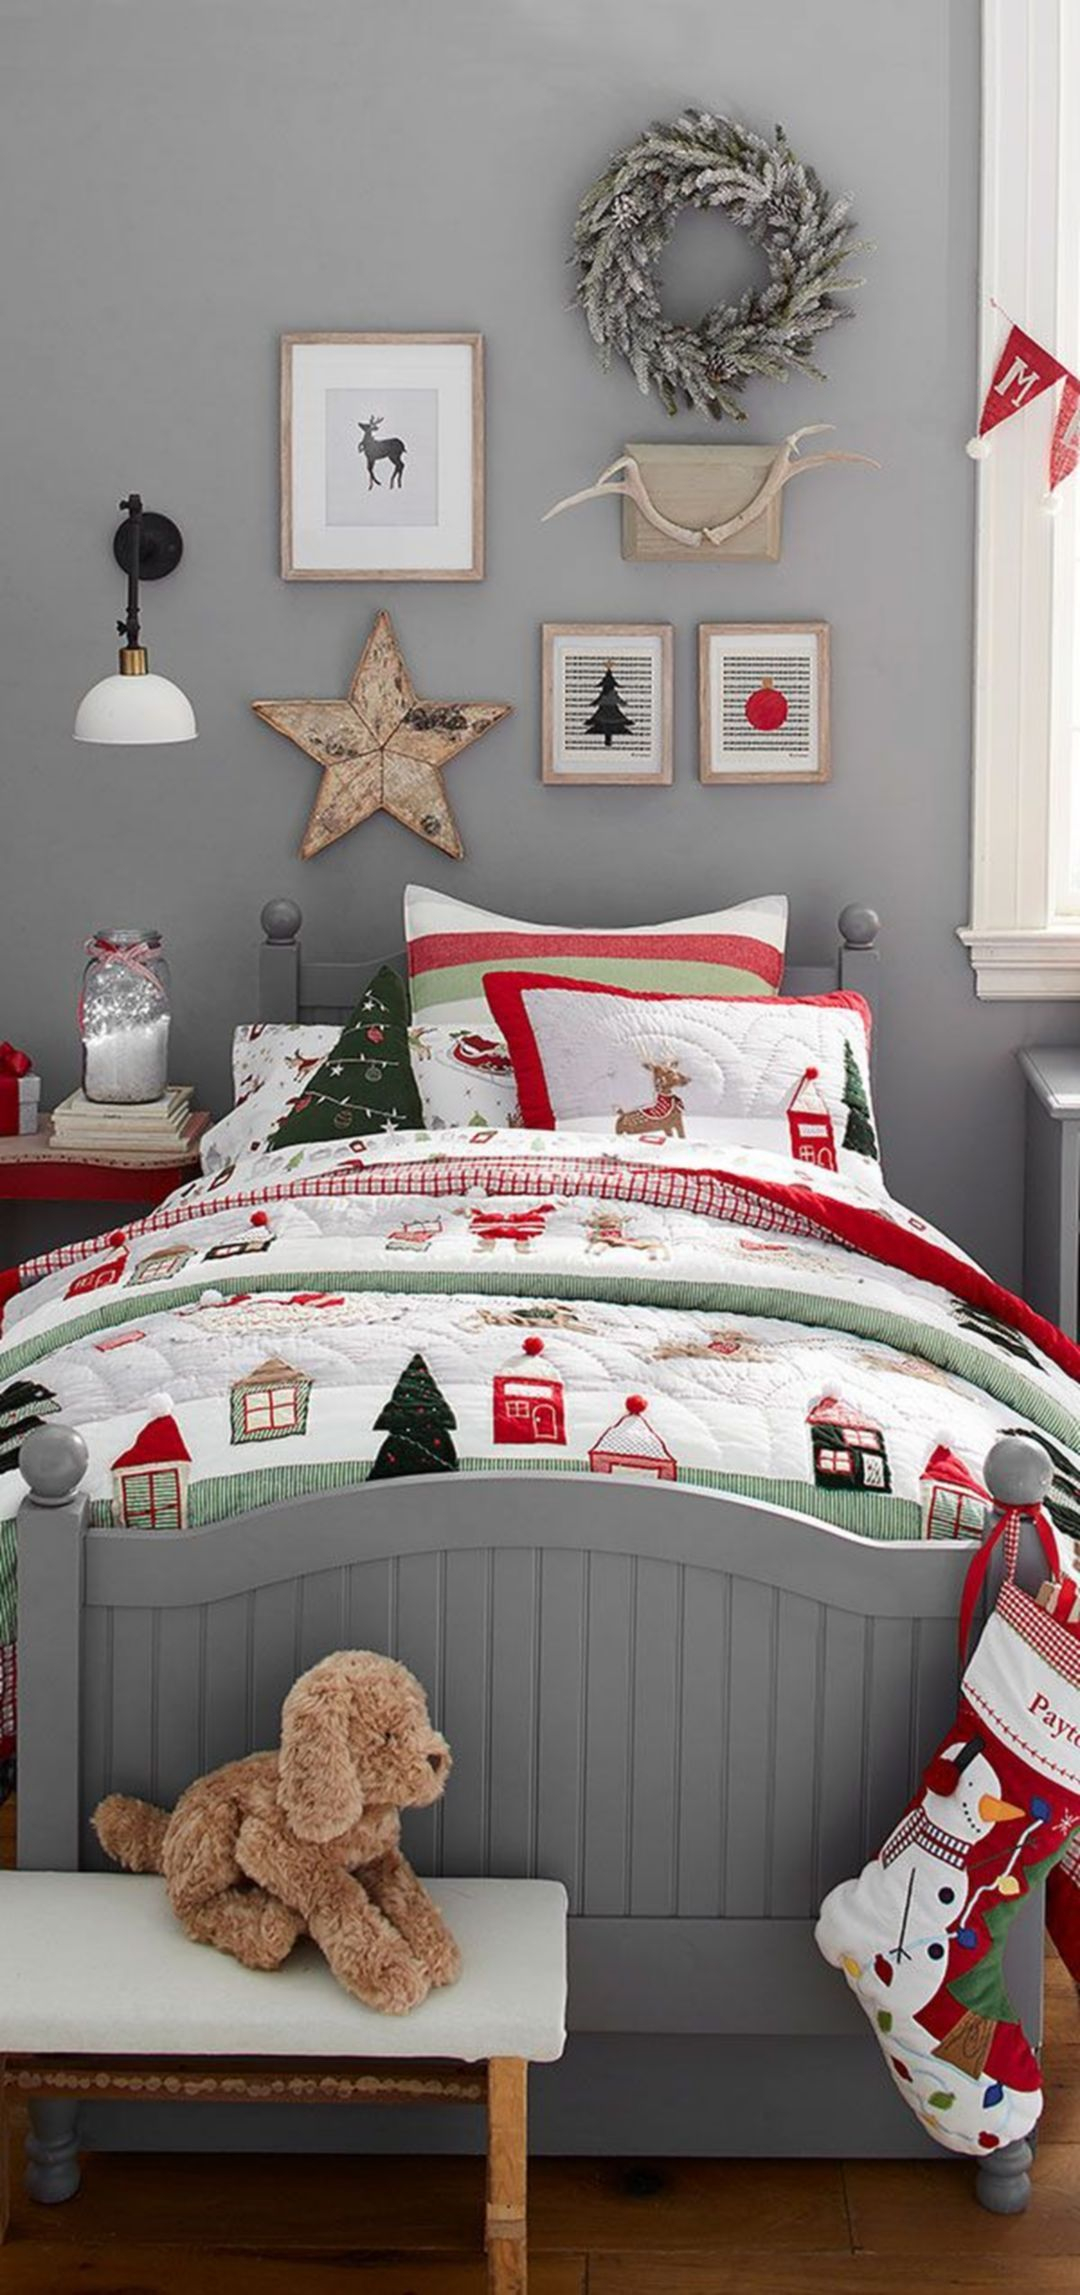 Latest Christmas Bedroom Decor Ideas For Kids To Try20